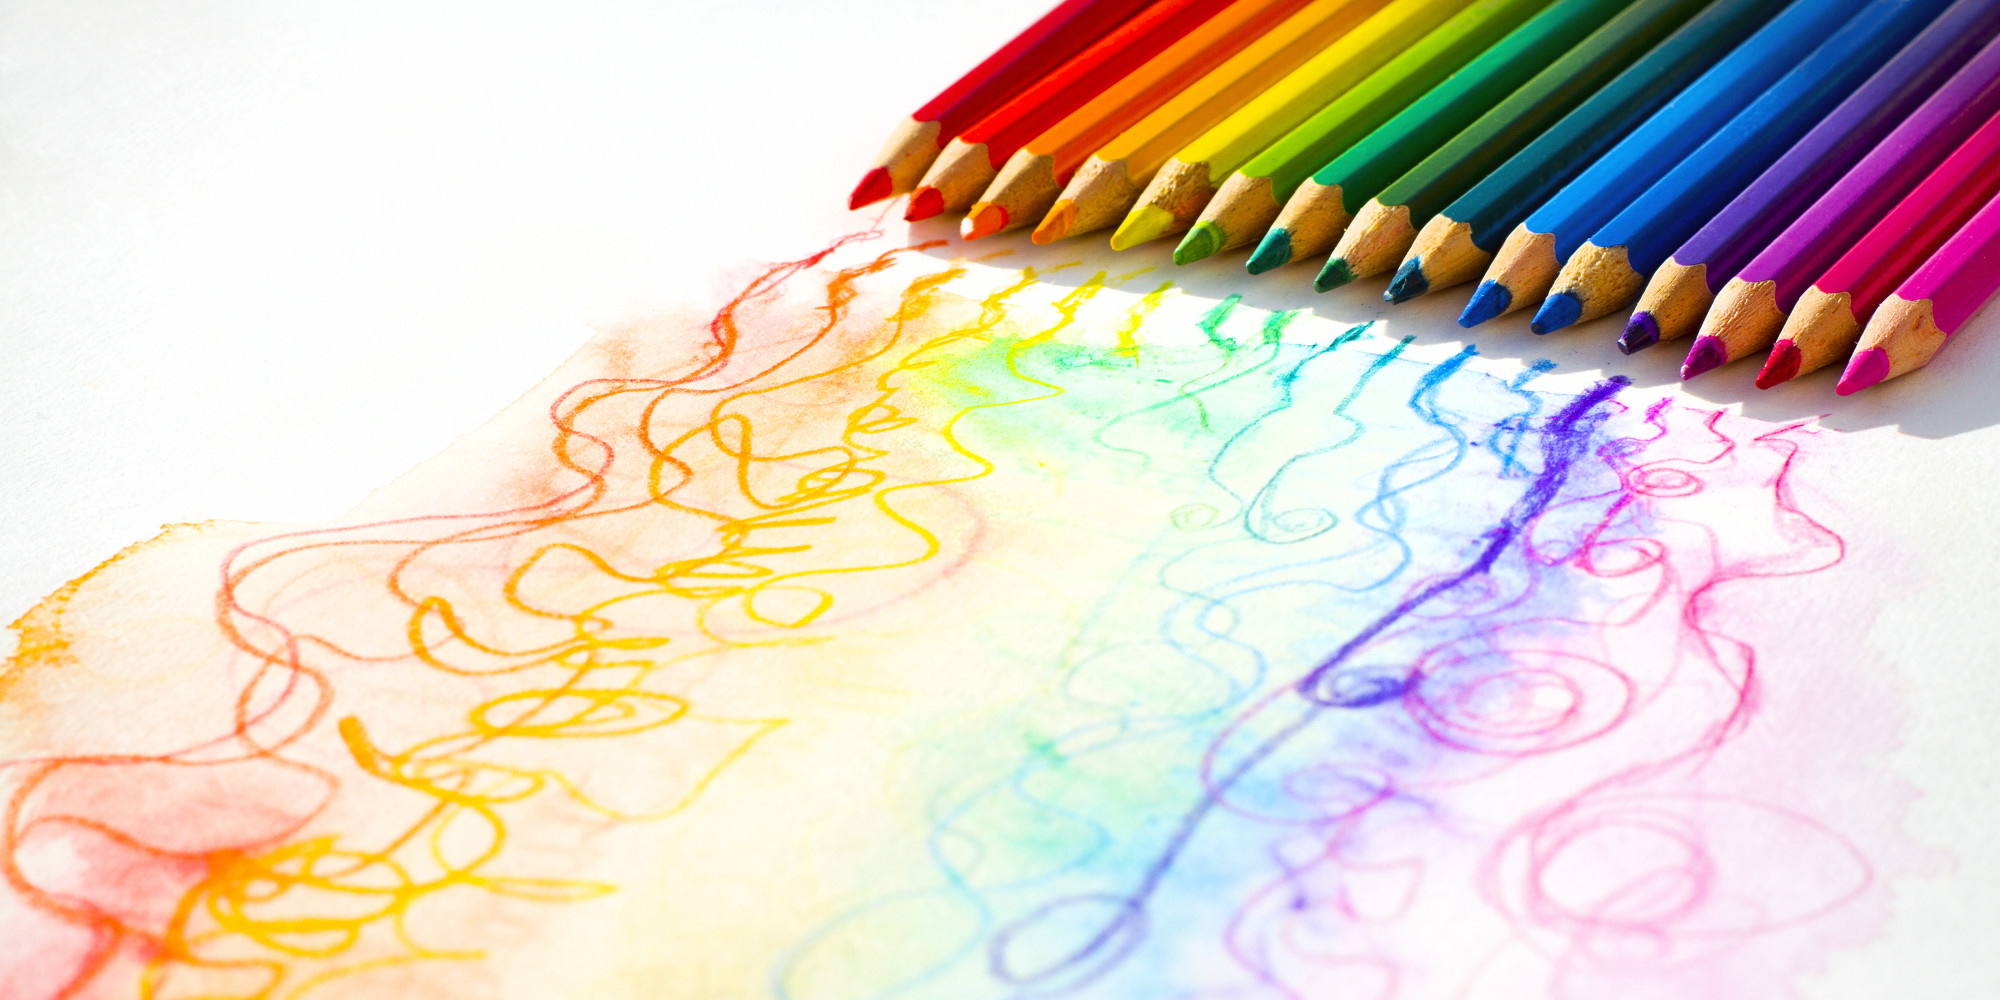 7 Reasons Adult Coloring Books Are Great For Your Mental